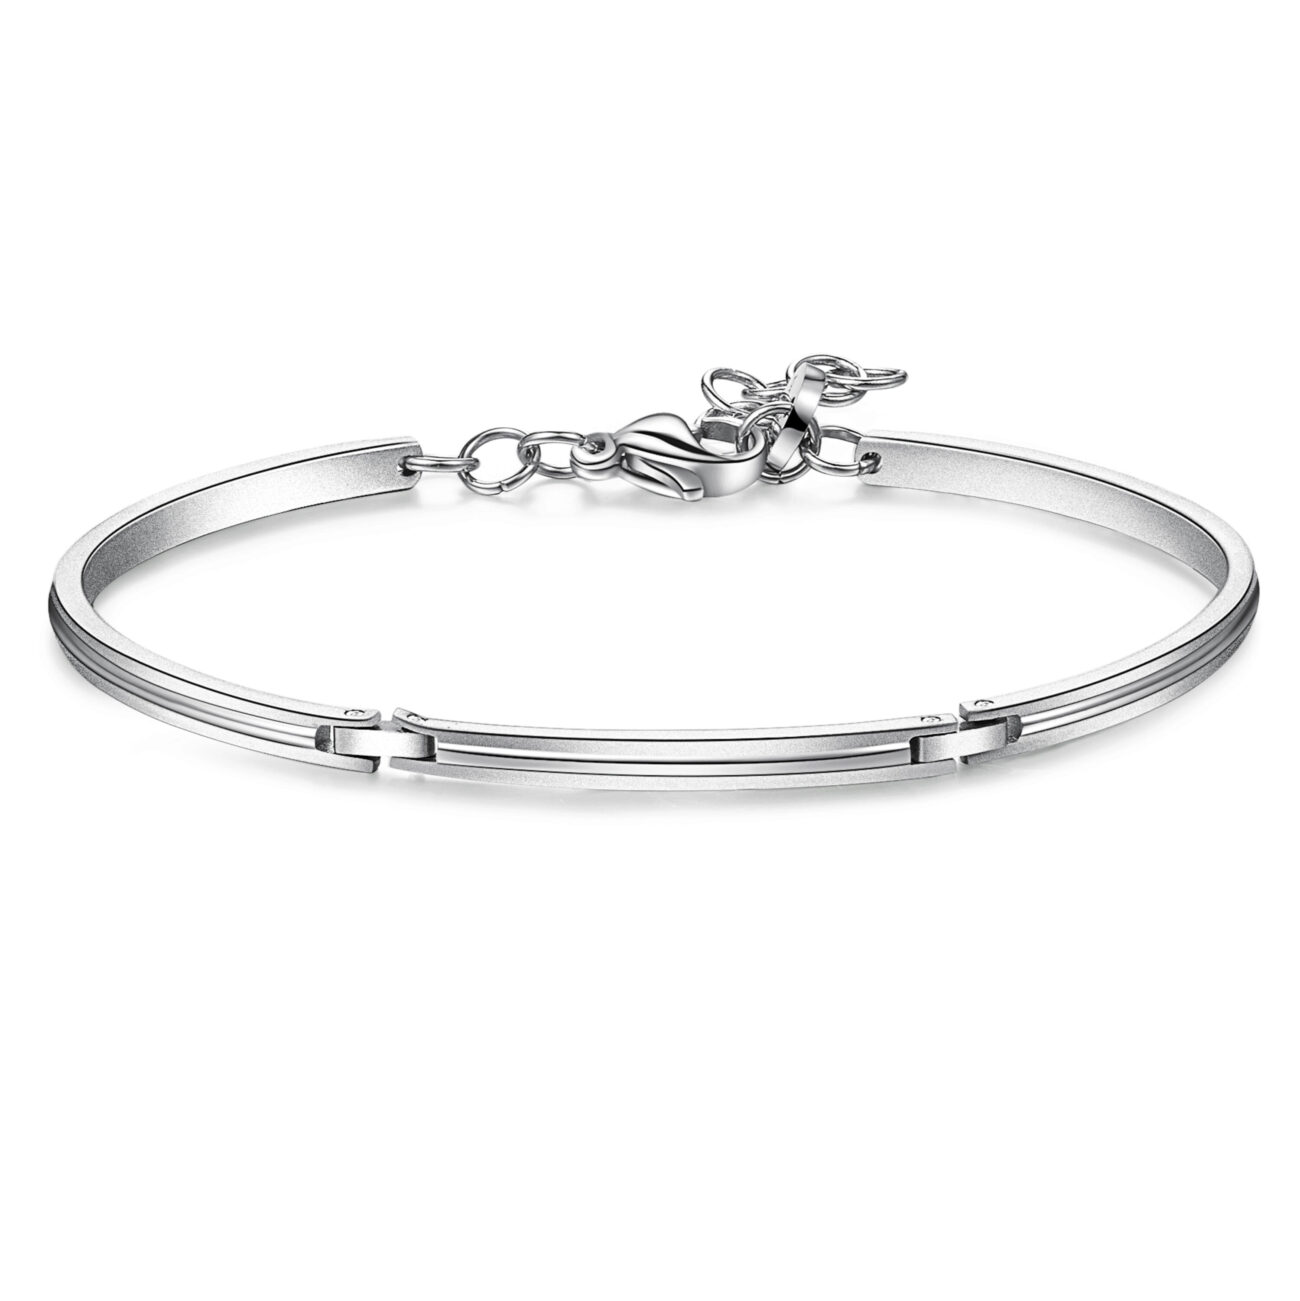 316L polished and brushed stainless steel semi-rigid bracelet.